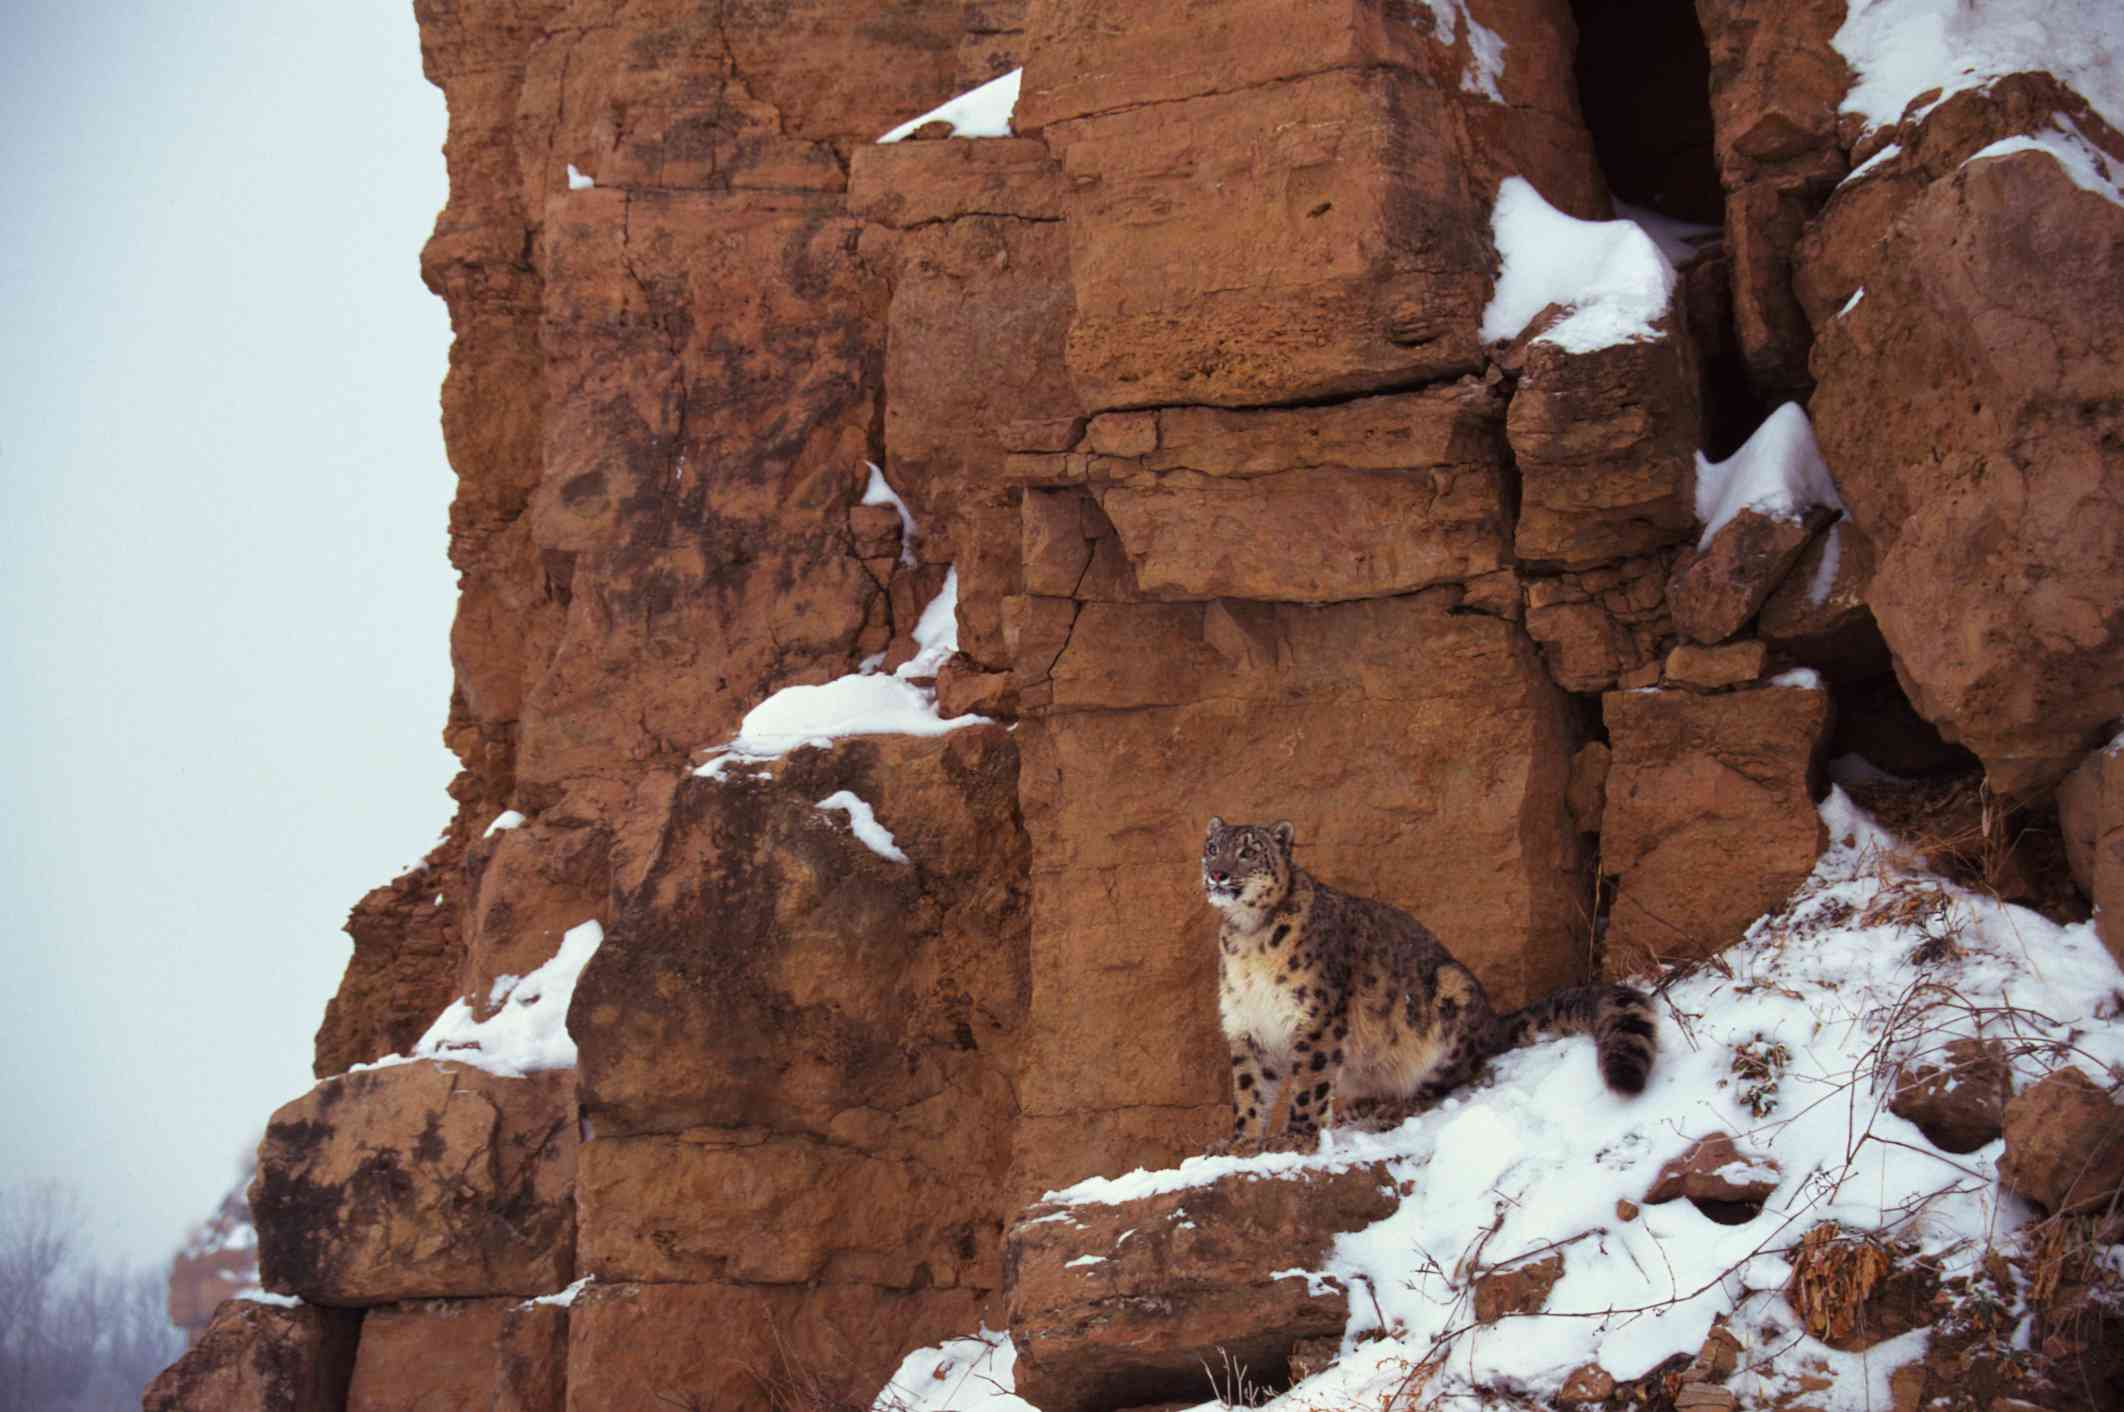 A snow leopard hiding in plain sight on a reddish colored cliff